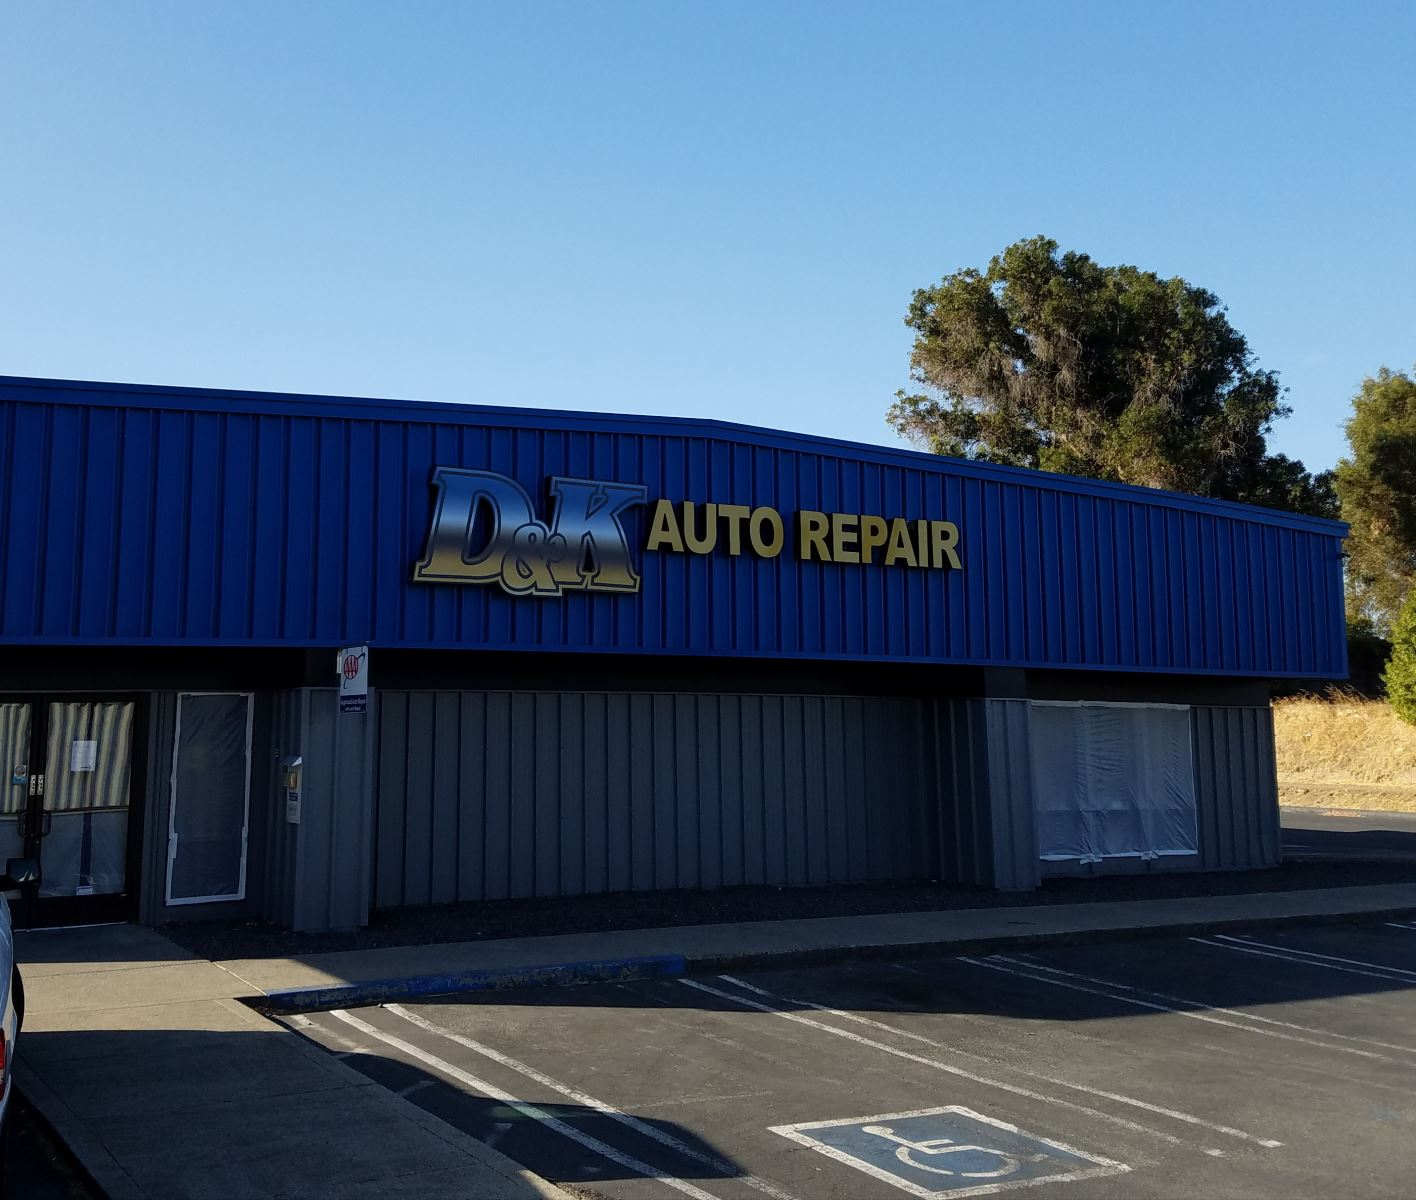 D&K Automotive Repair Update for October 10, 2017